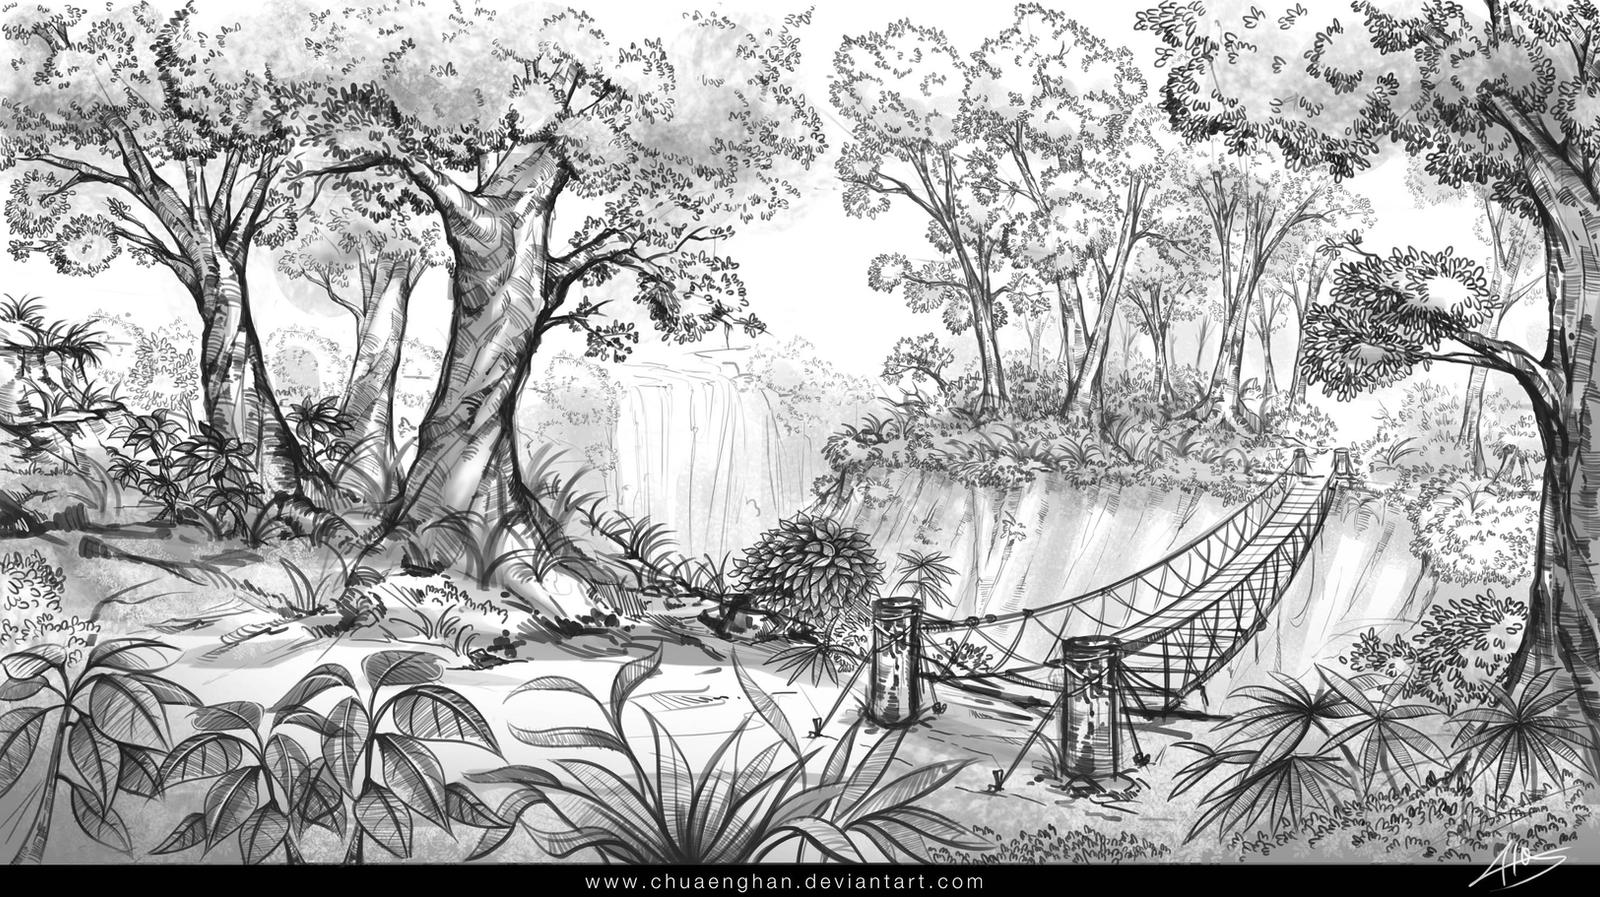 Line Drawing Jungle : Jungle sketch by chuaenghan on deviantart